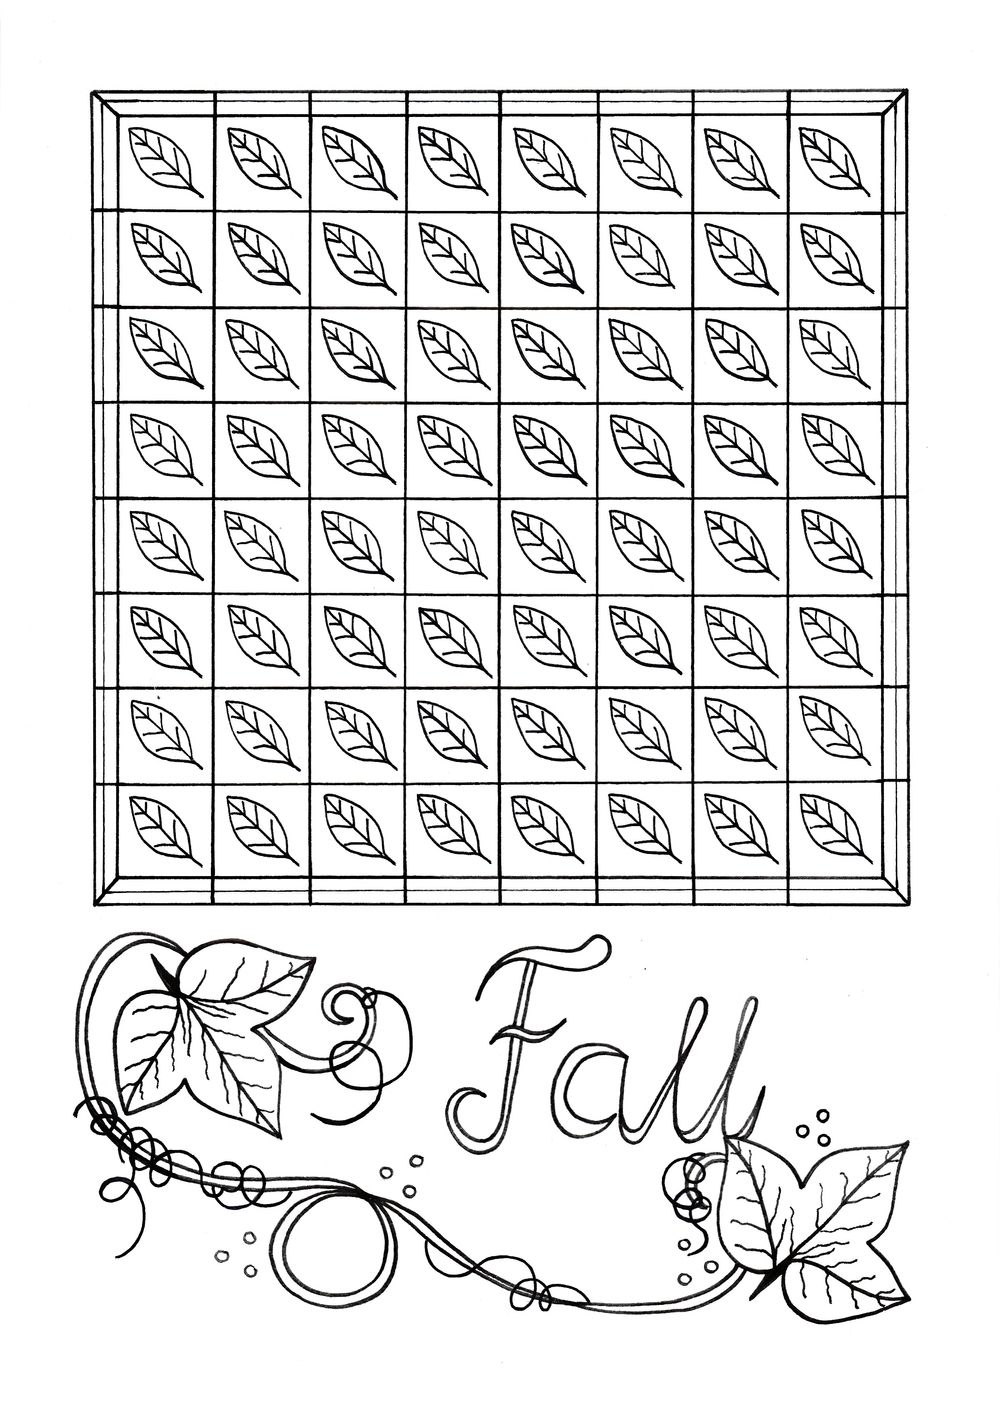 Mindless Fall Leaves Adult Coloring Page | Adult coloring, Fall ...